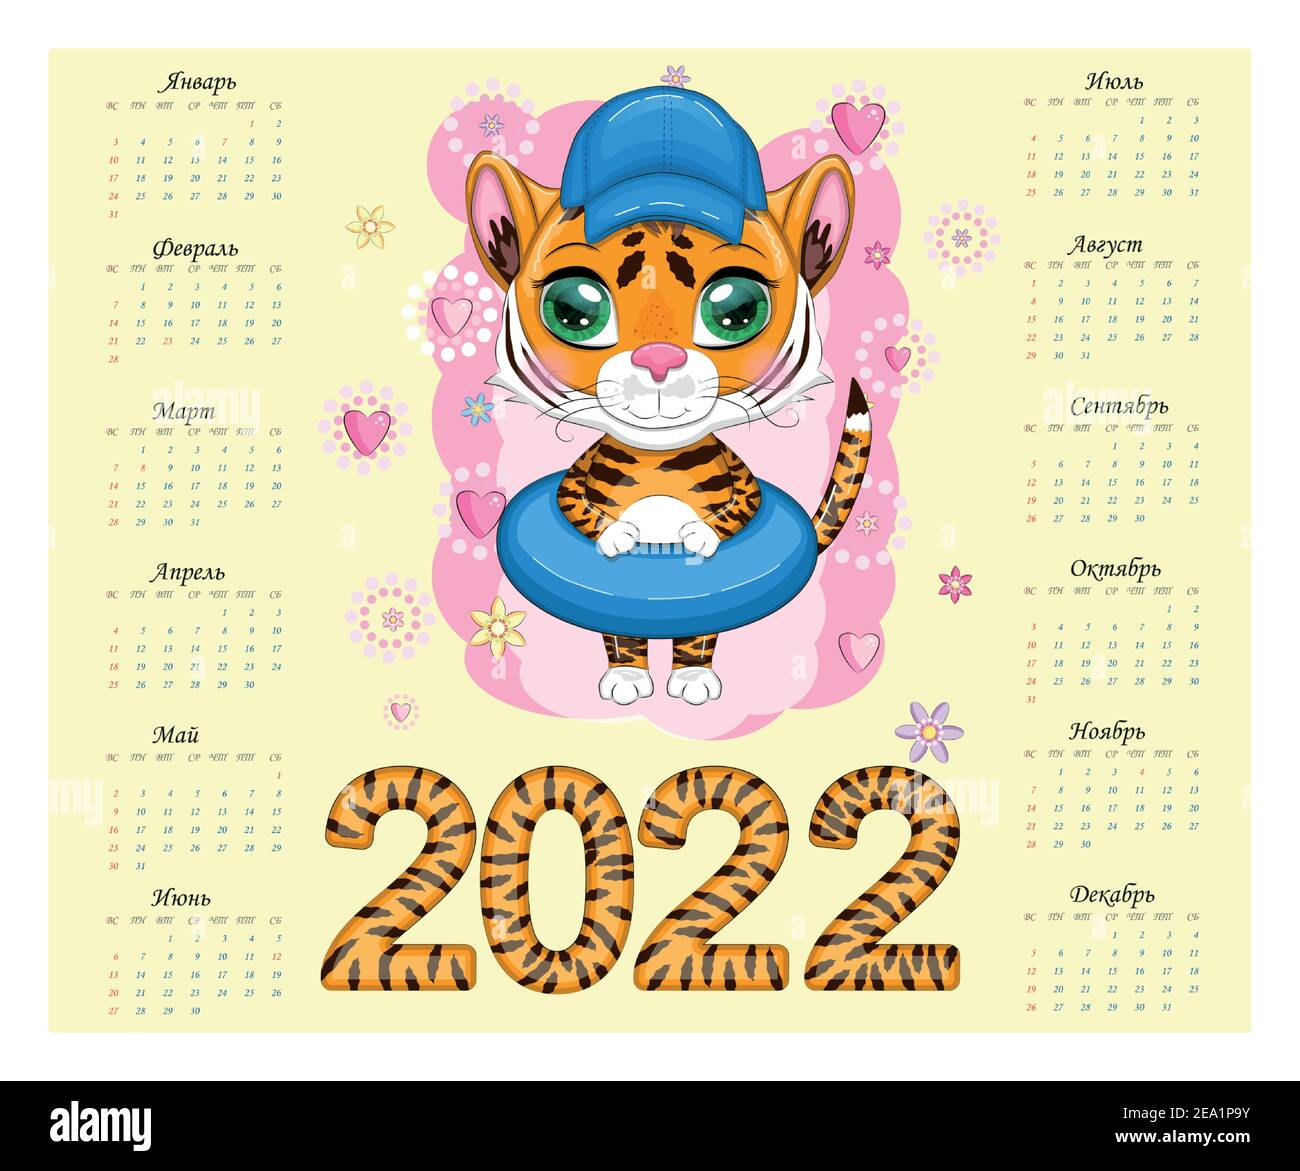 Witches Calendar 2022.Calendar 2022 Tiger A Symbol Of The New Year Chinese Horoscope Calendar Horizontal A4 Format Calendar For 12 Months The Week Starts On Sunday In Stock Vector Image Art Alamy